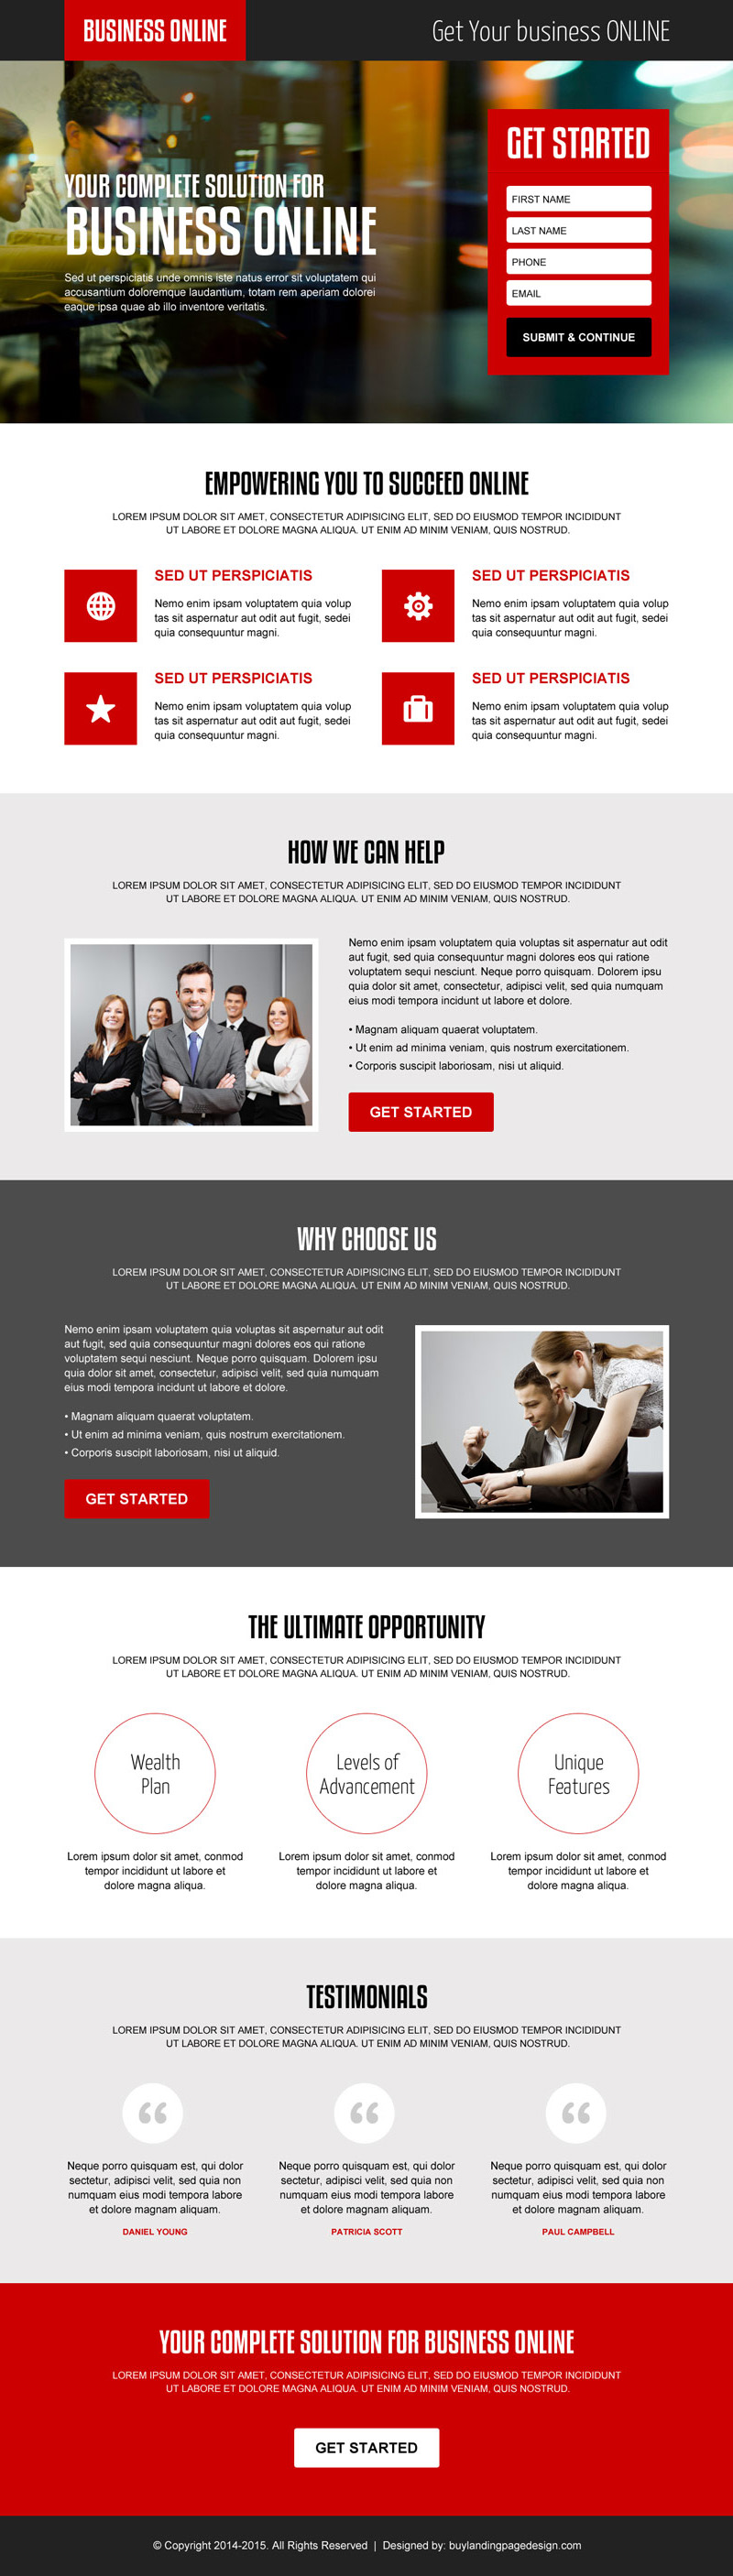 best-online-business-solution-responsive-conversion-centered-landing-page-design-template-009